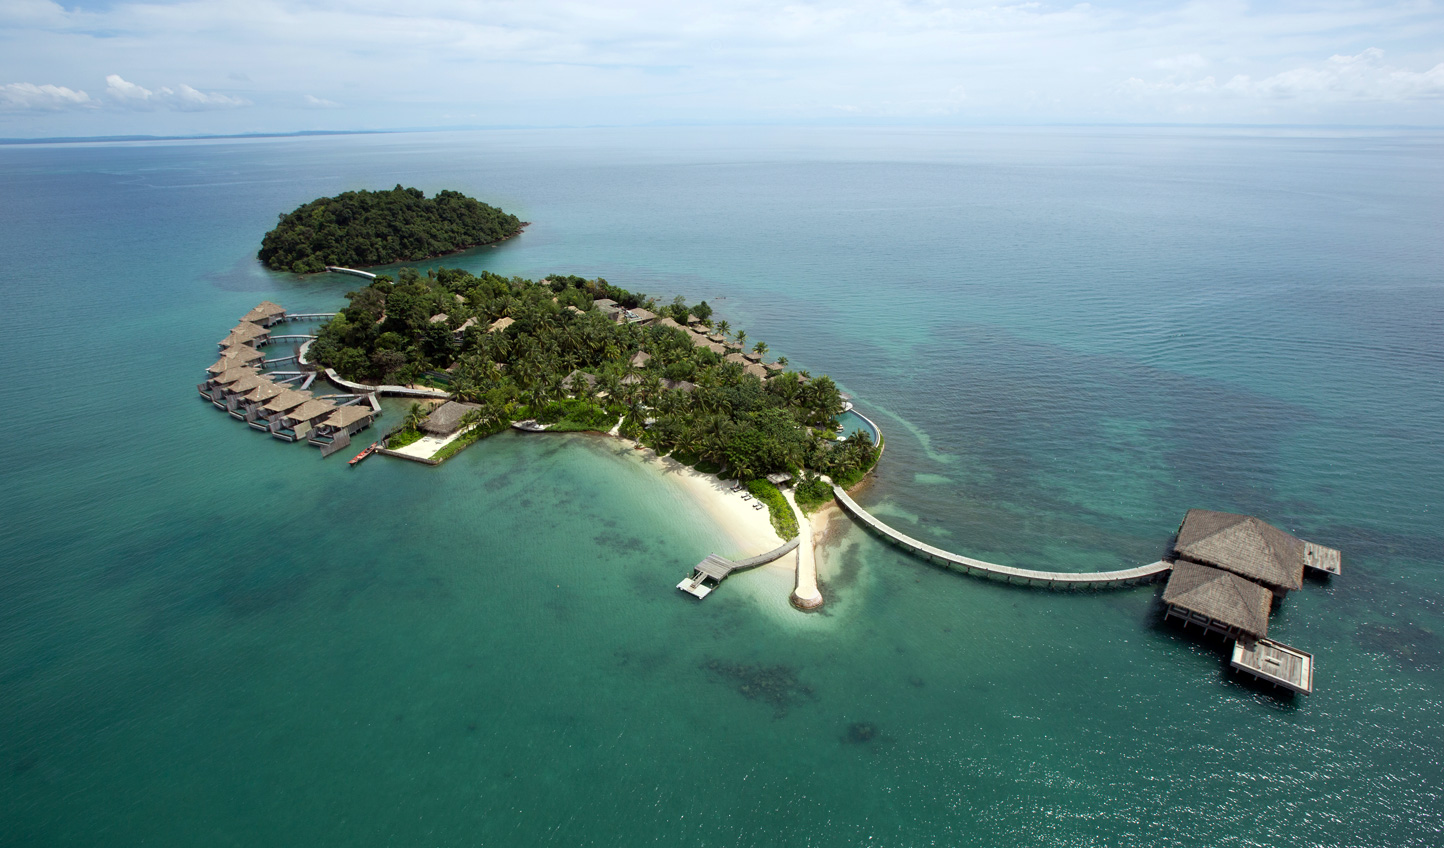 Your private island escape